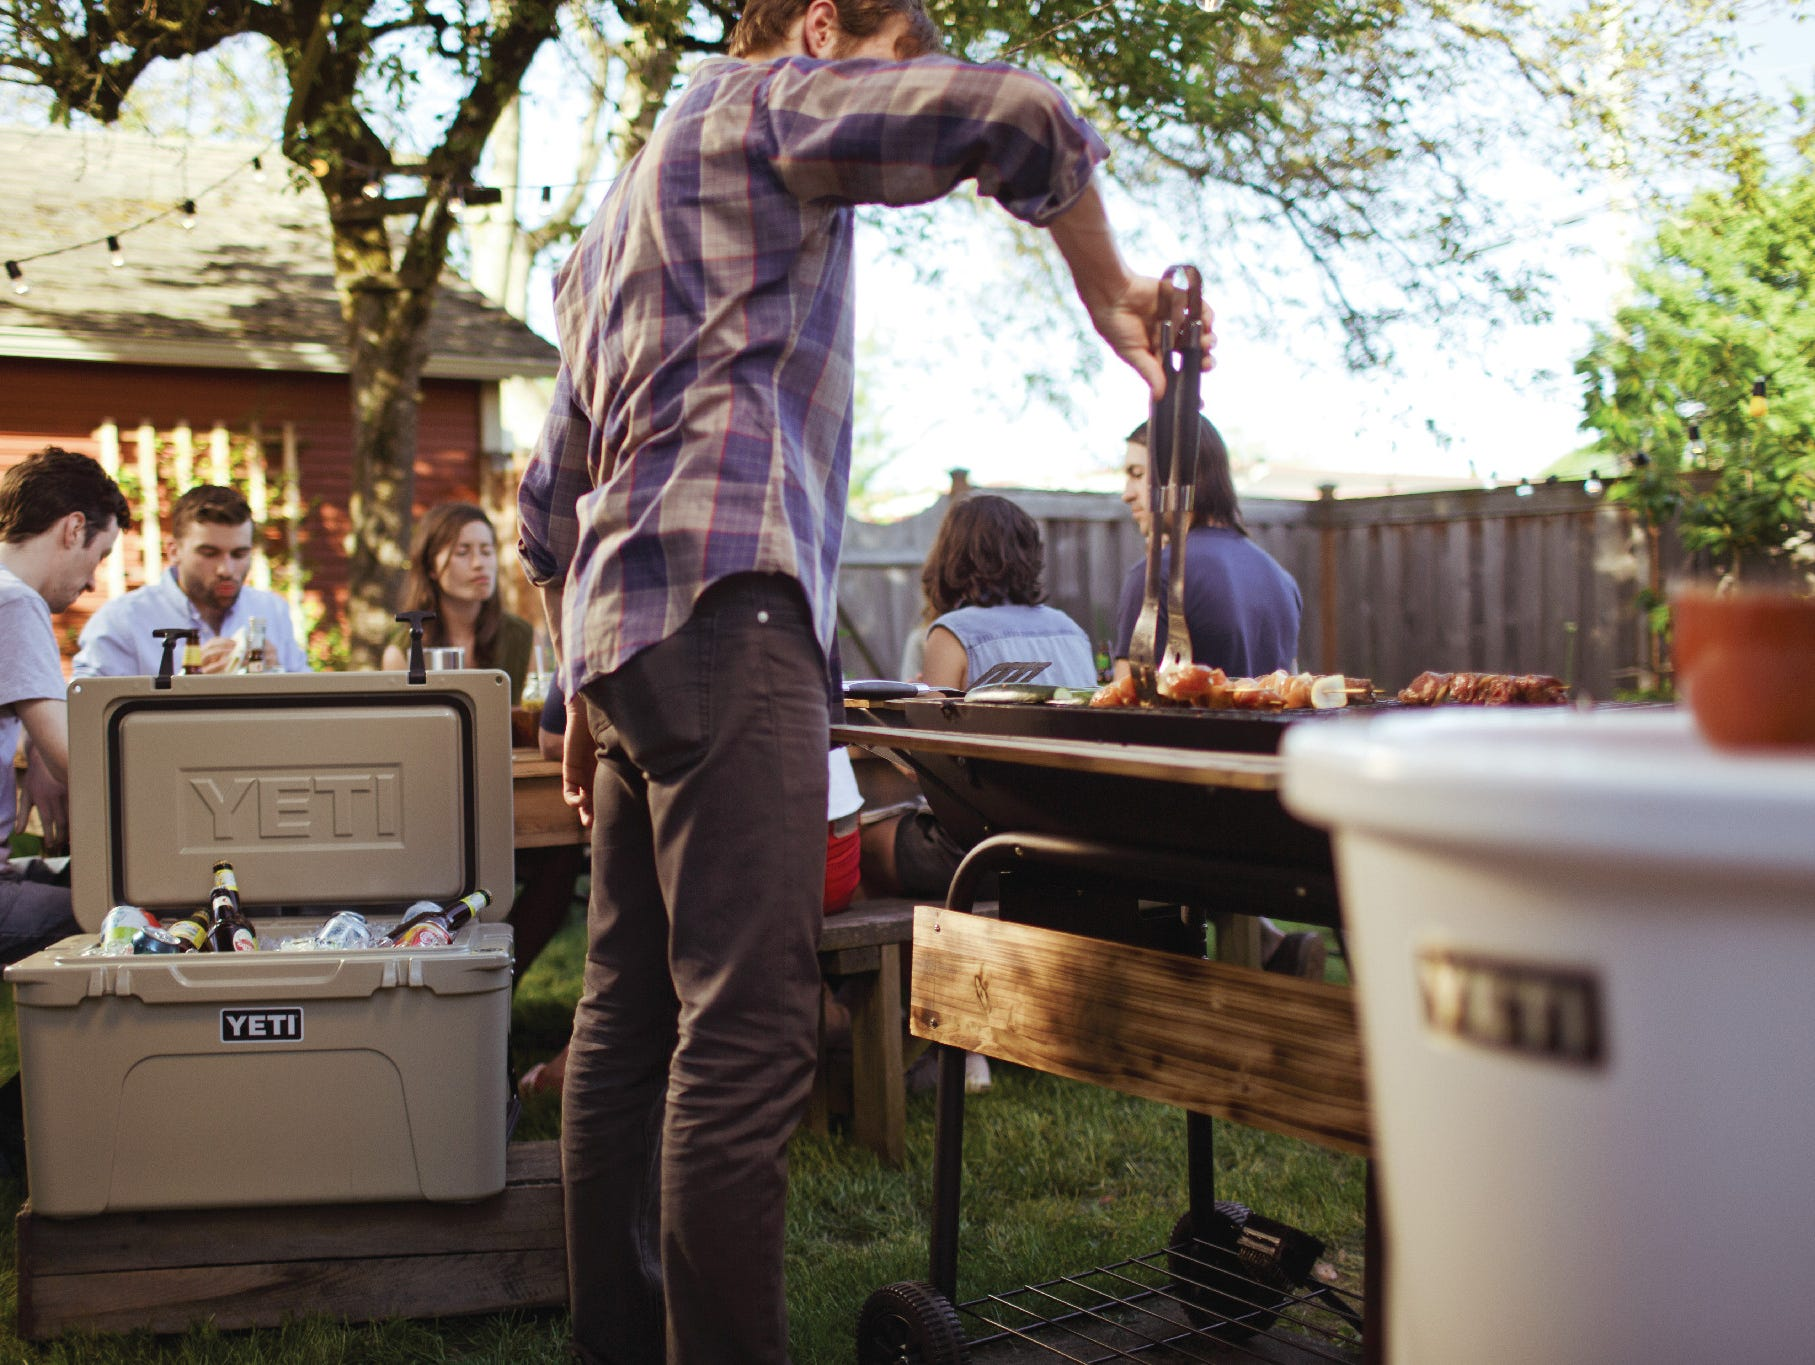 Win a YETI Cooler plus Colsters and stay chill this summer.  Enter 5/22 - 6/25.